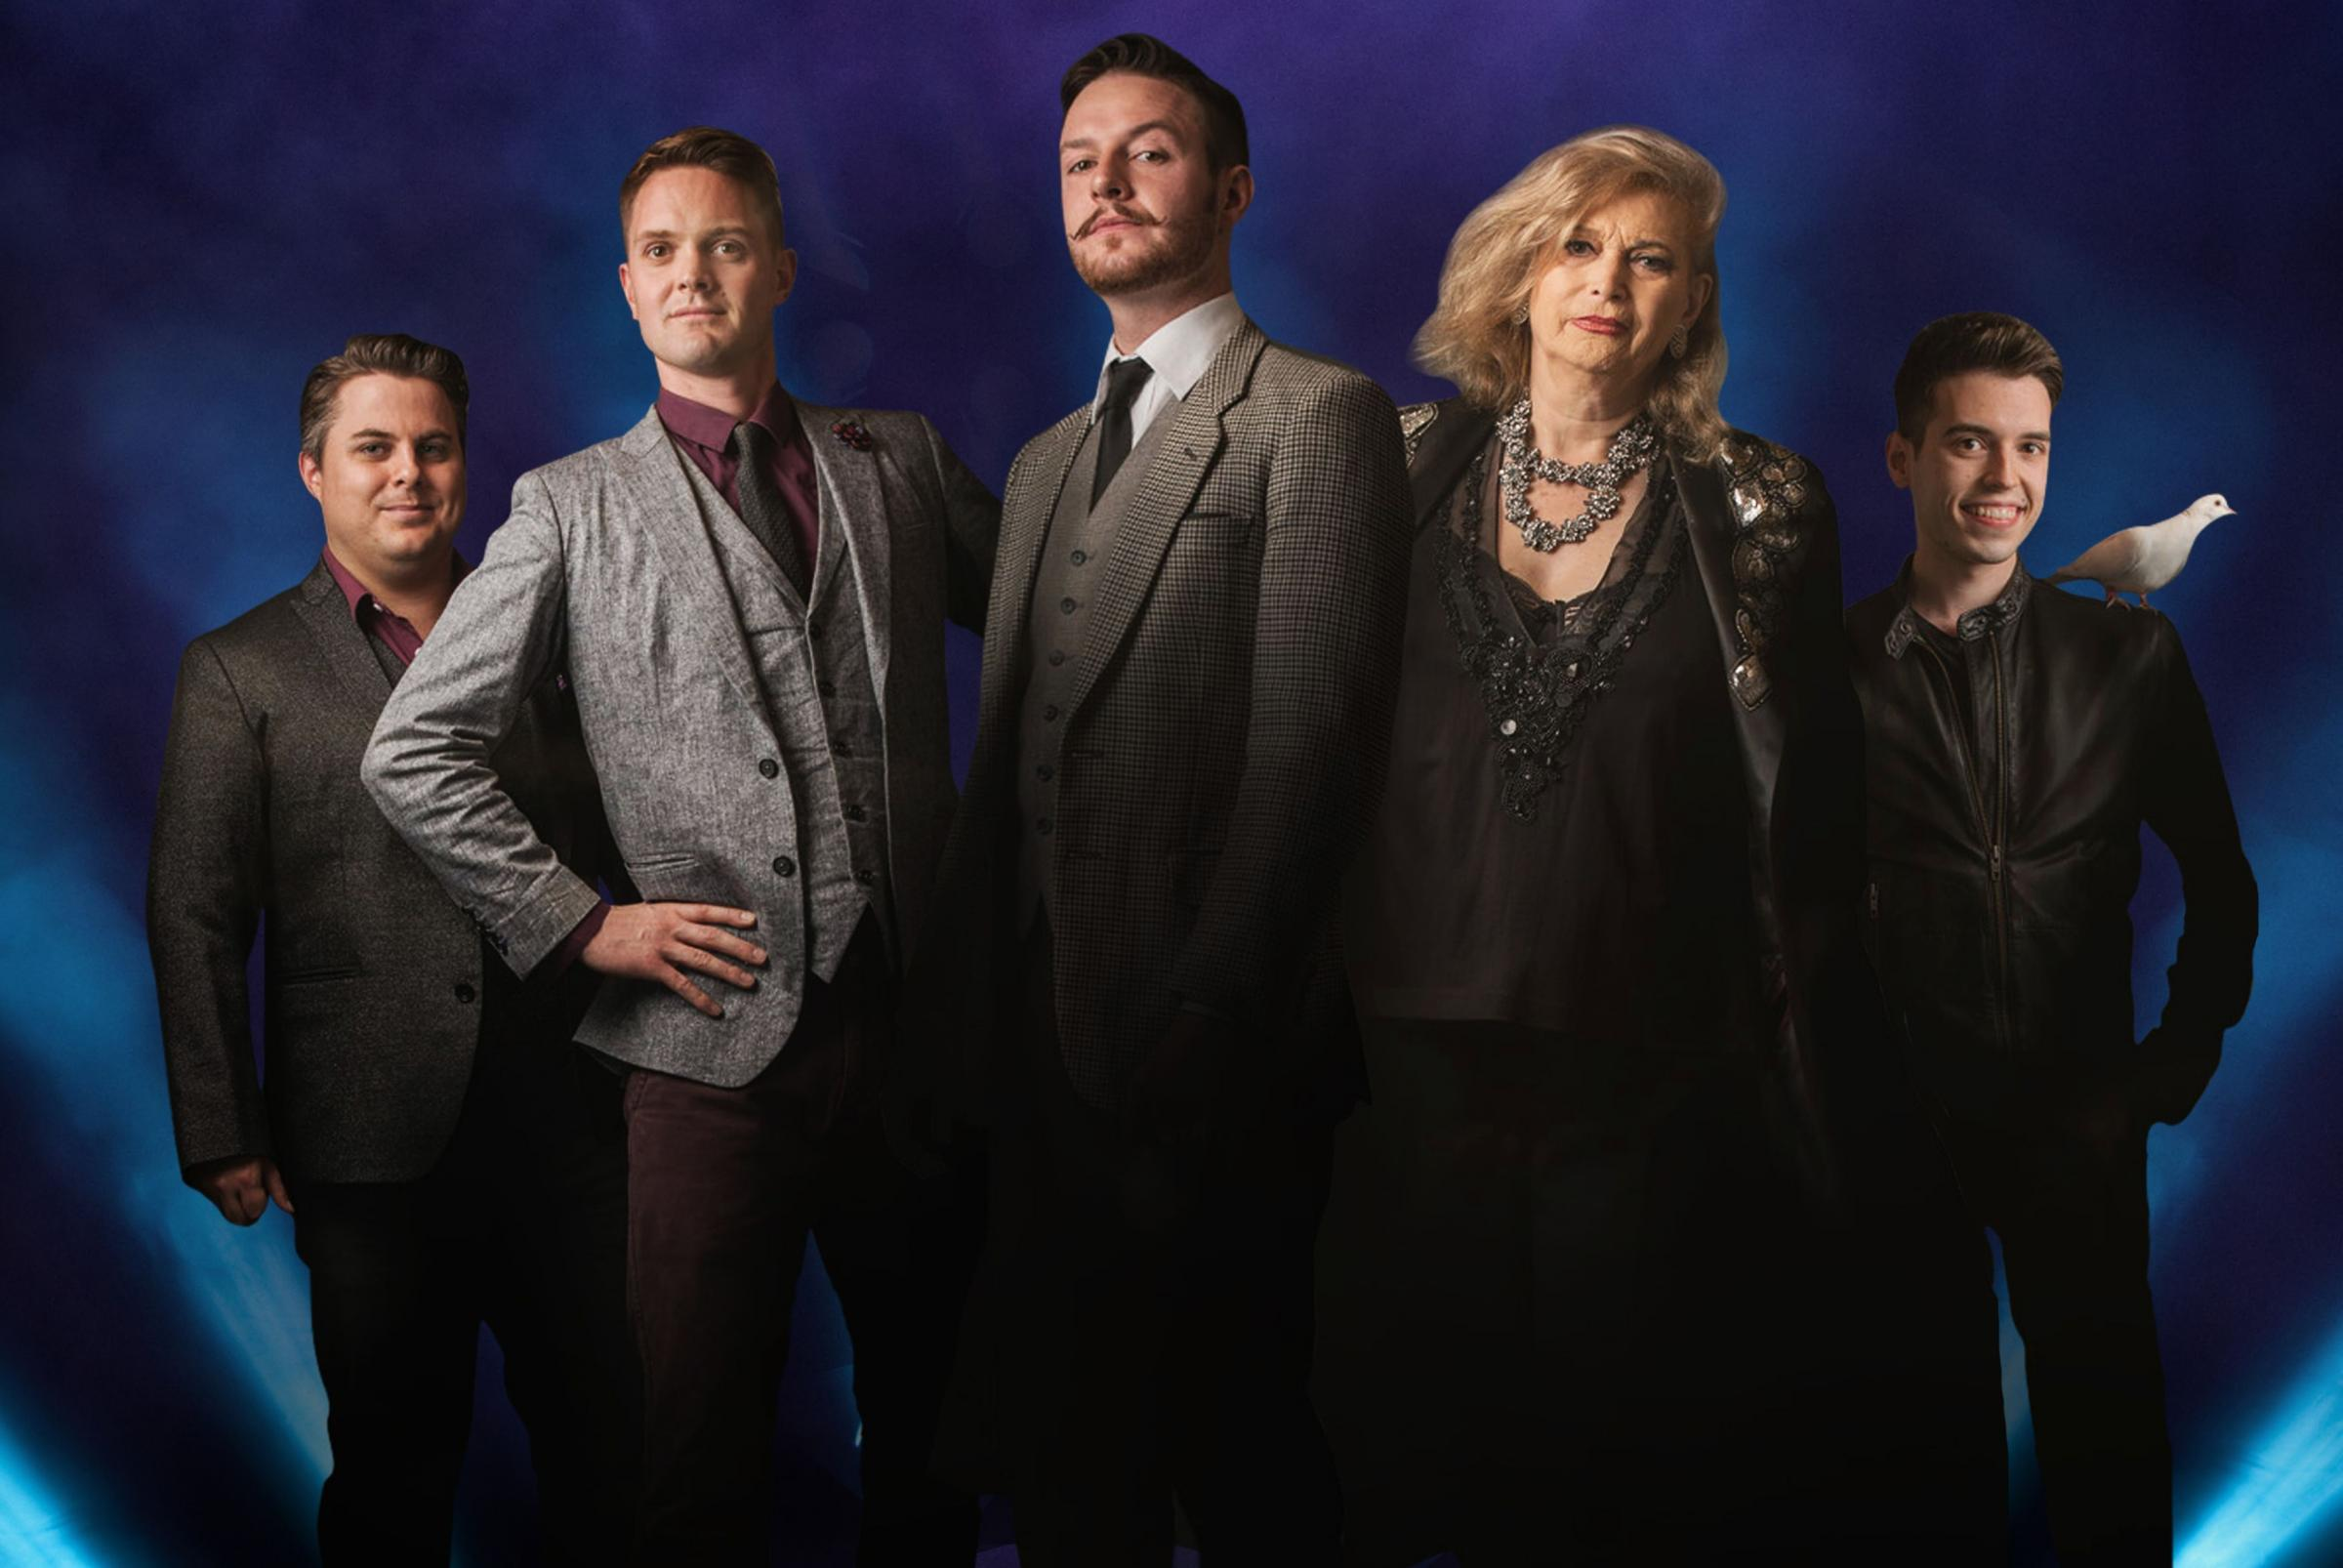 DON'T MISS: Champions of Magic will perform at the Octagon Theatre in Yeovil